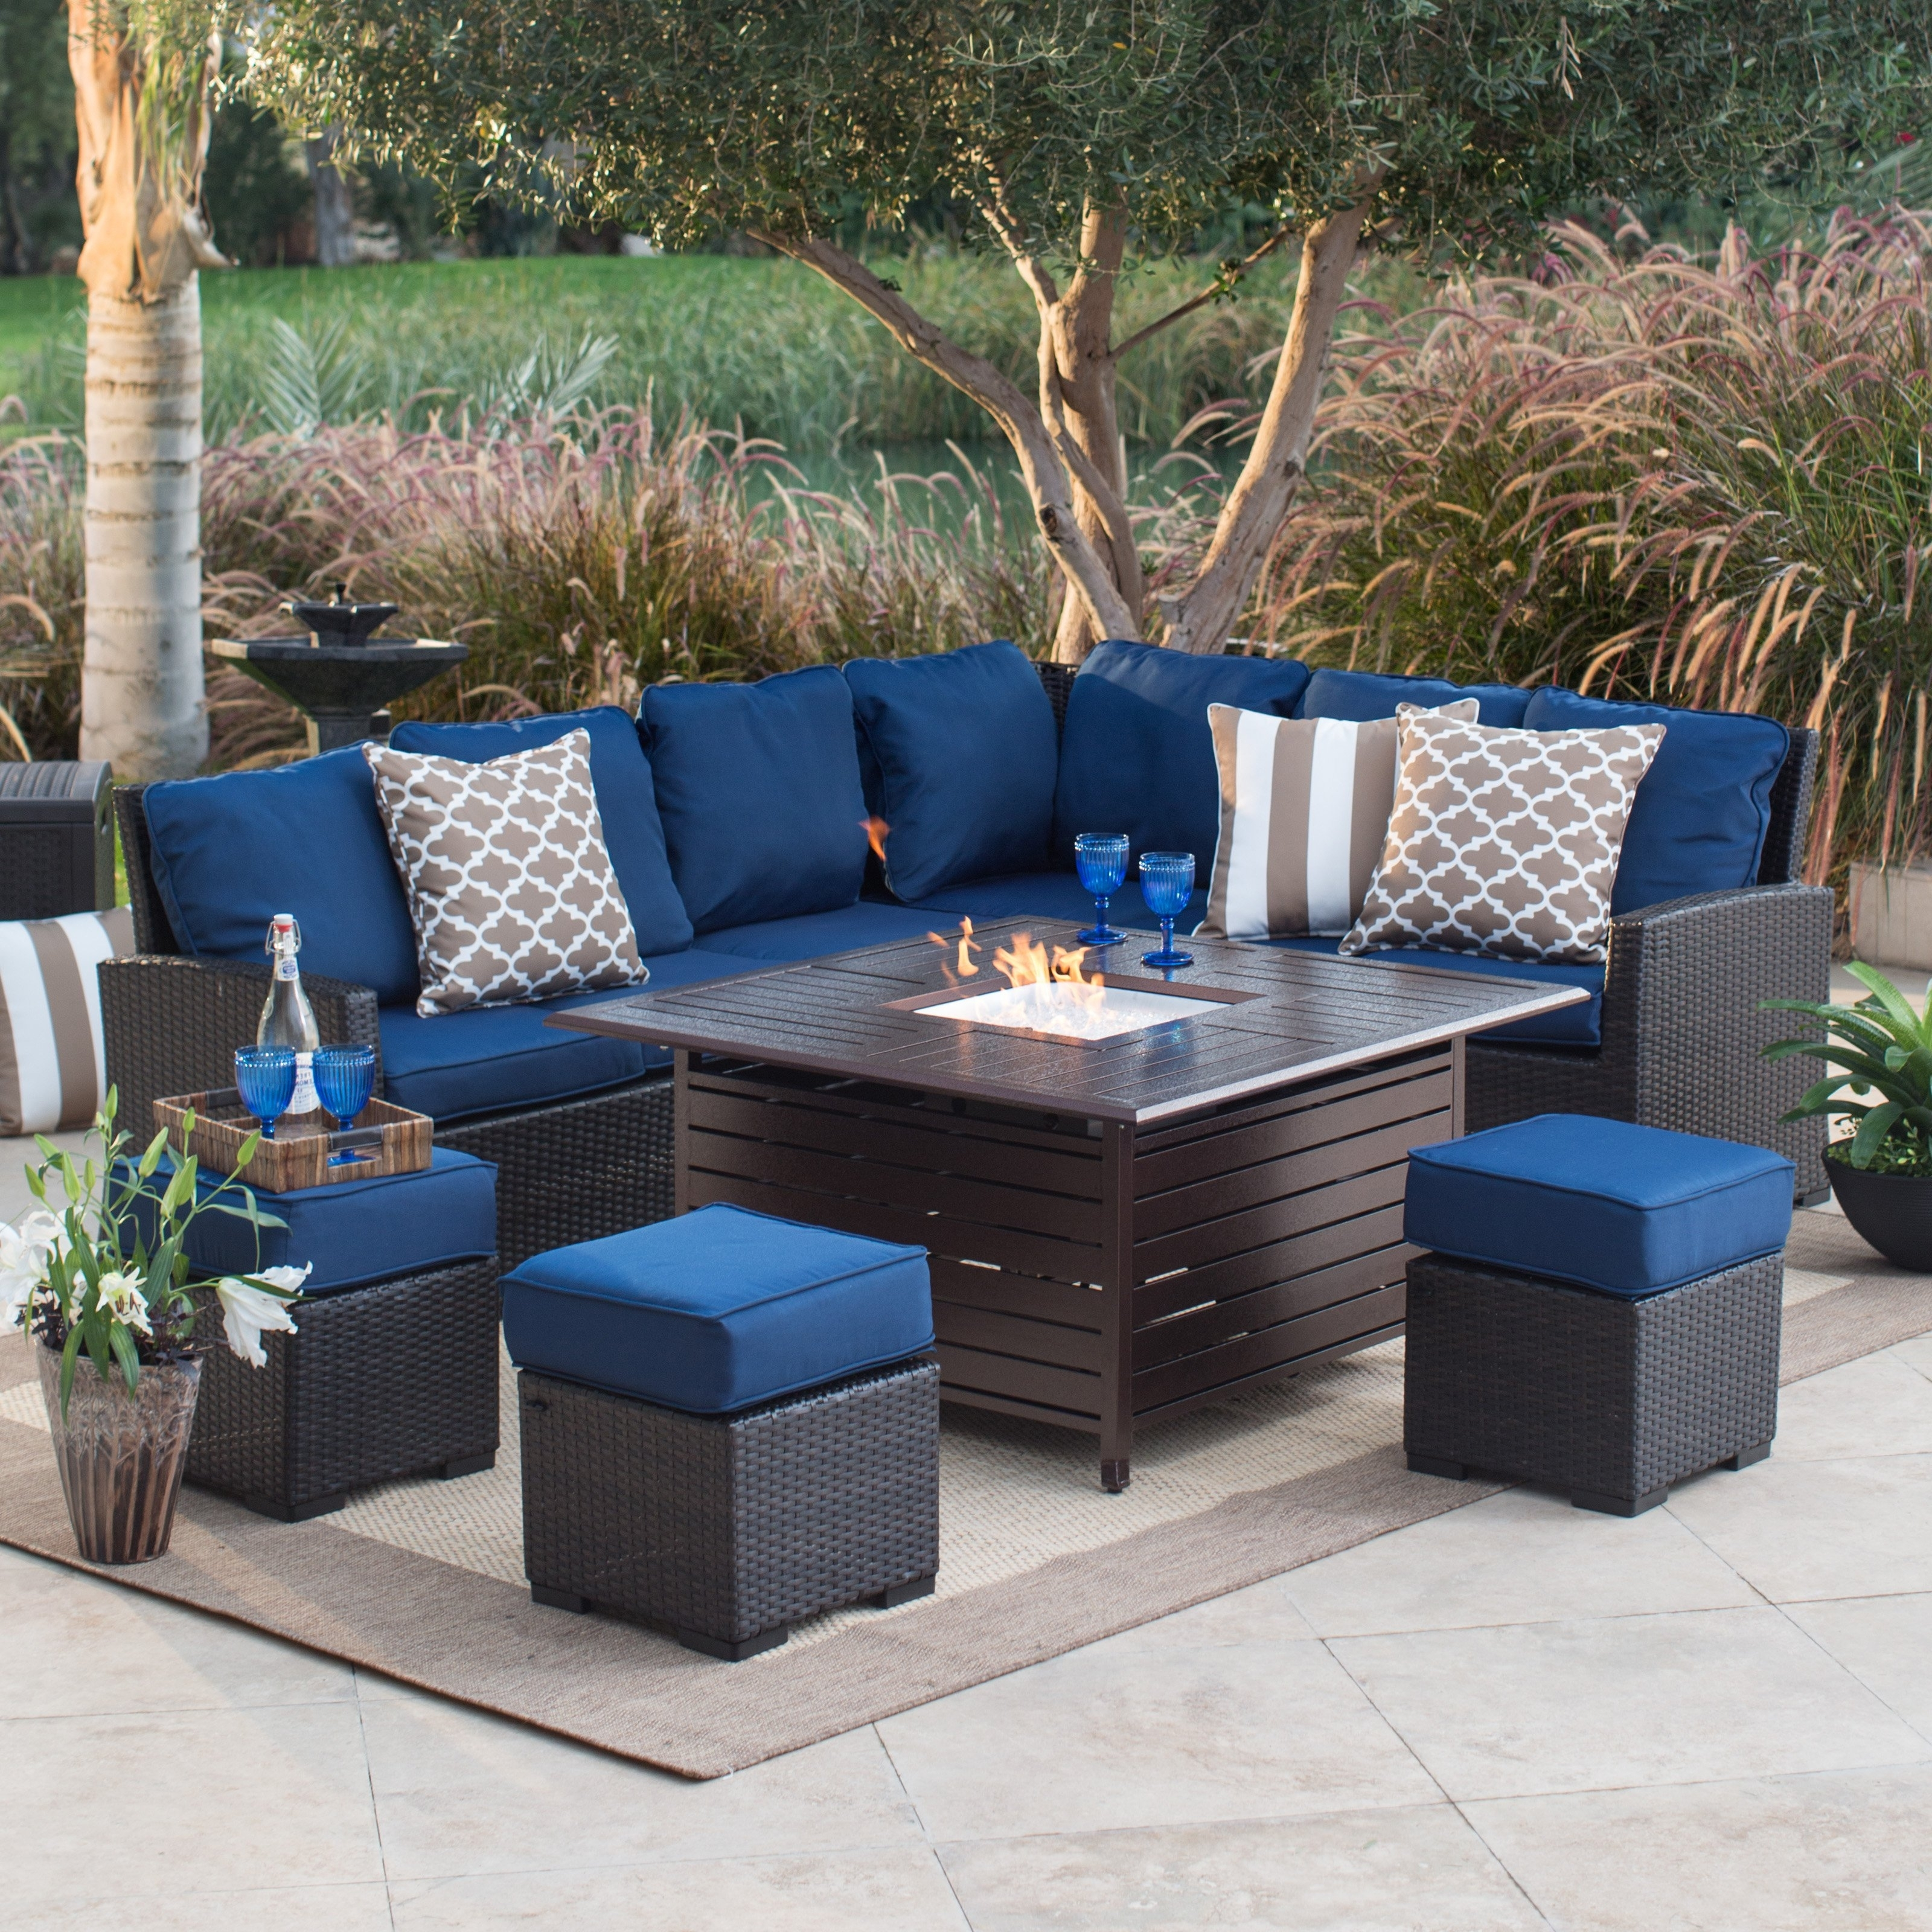 Patio Conversation Sets With Fire Pit In Popular Fire Pit Patio Sets Hayneedle Chat Set Cover Canada Captivating (View 8 of 20)